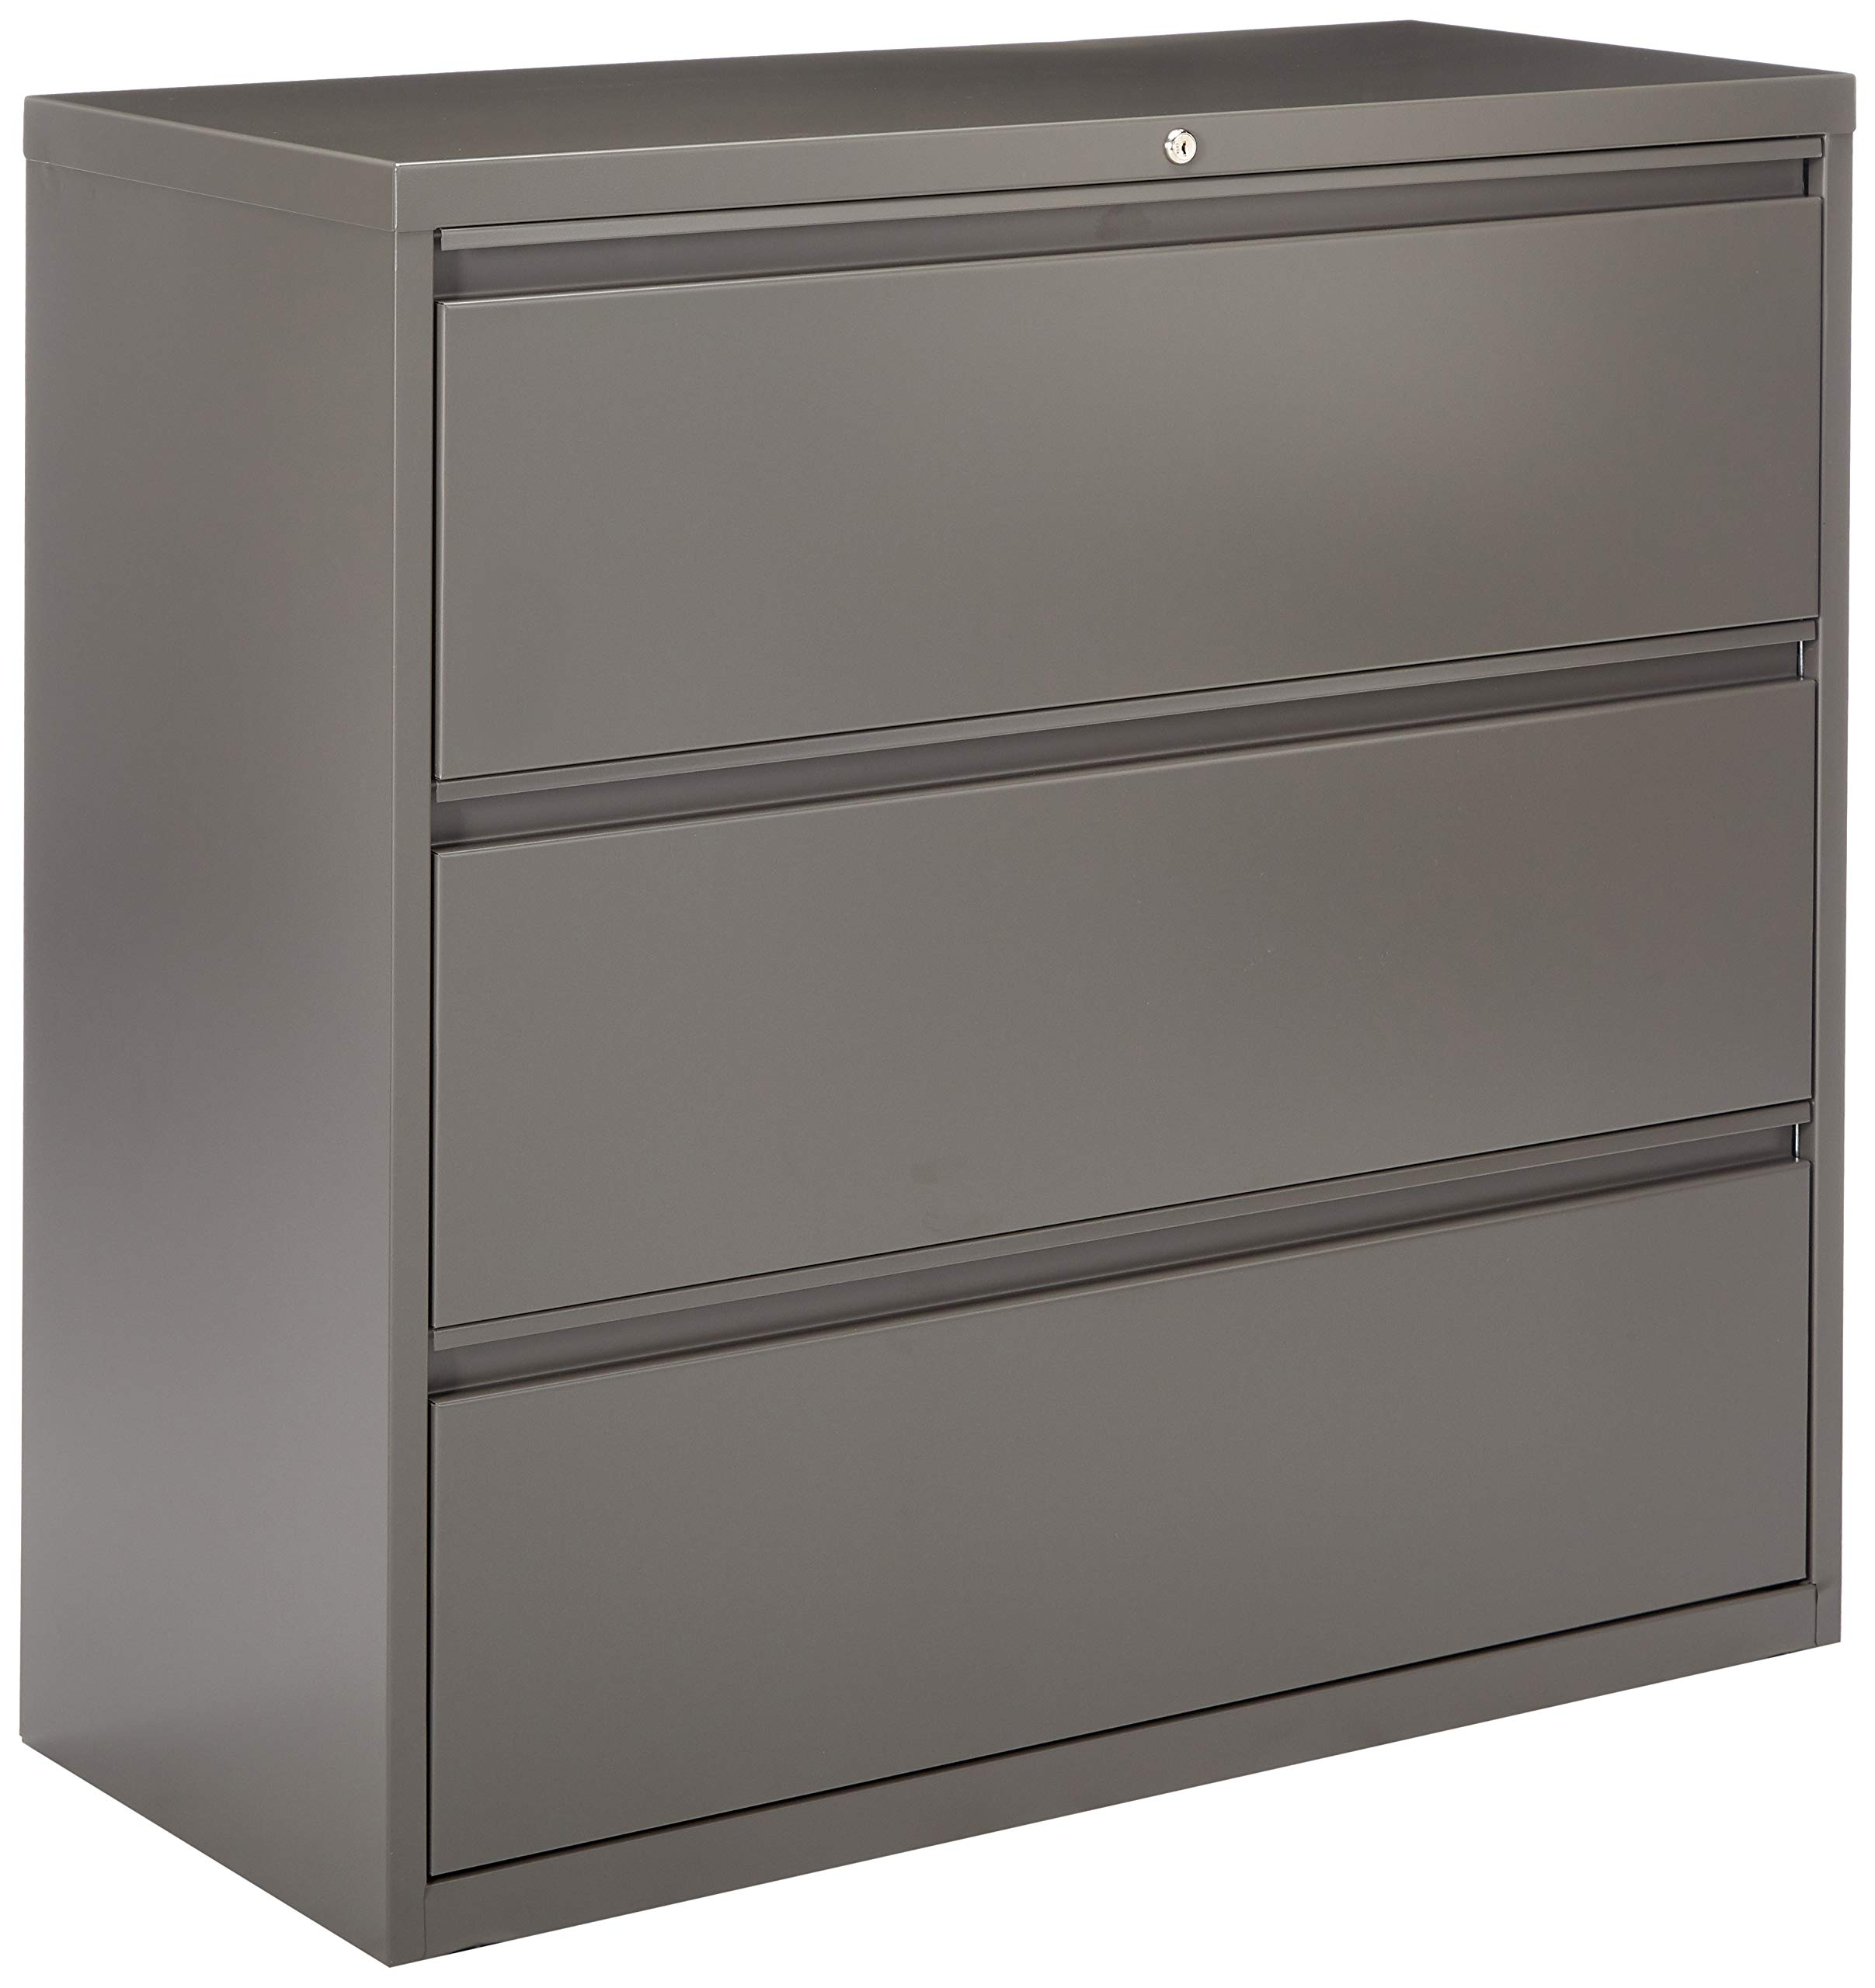 Lorell LLR60476 Lateral File, Medium Tone by Lorell